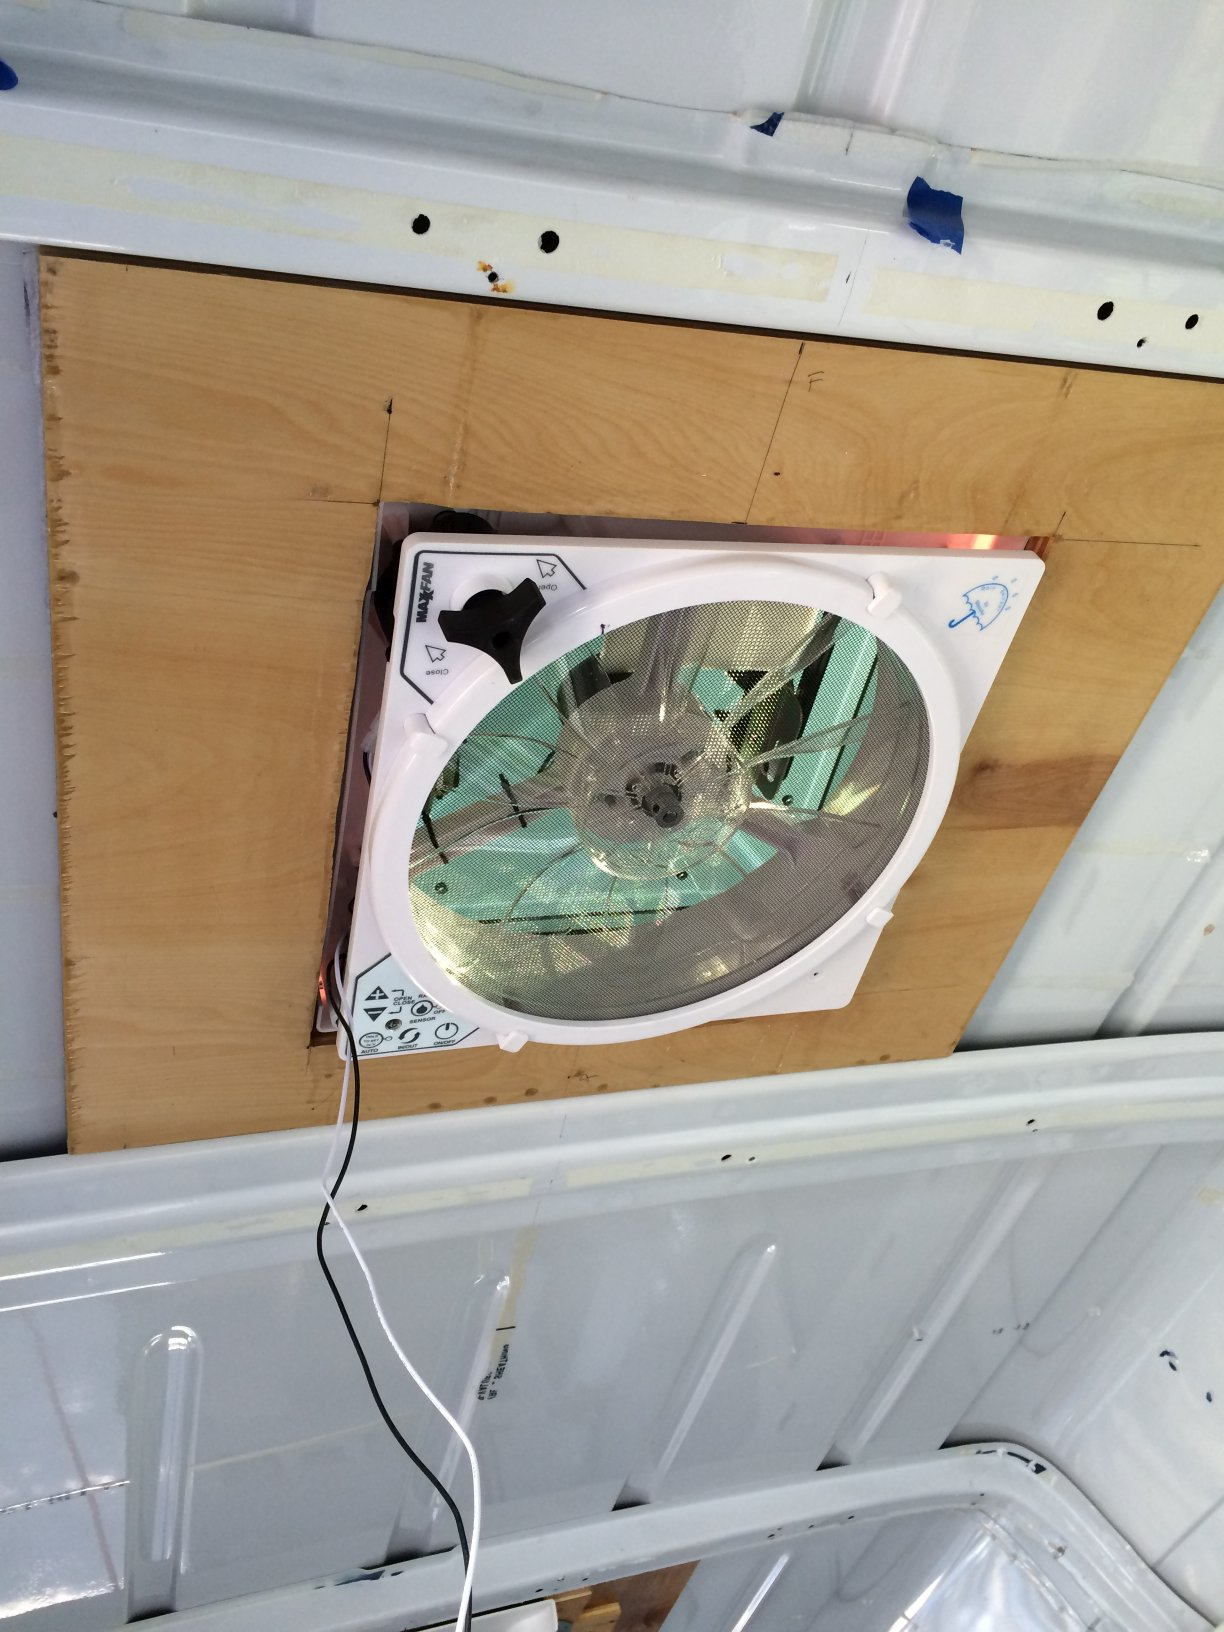 Inside view of the installed Maxxfan